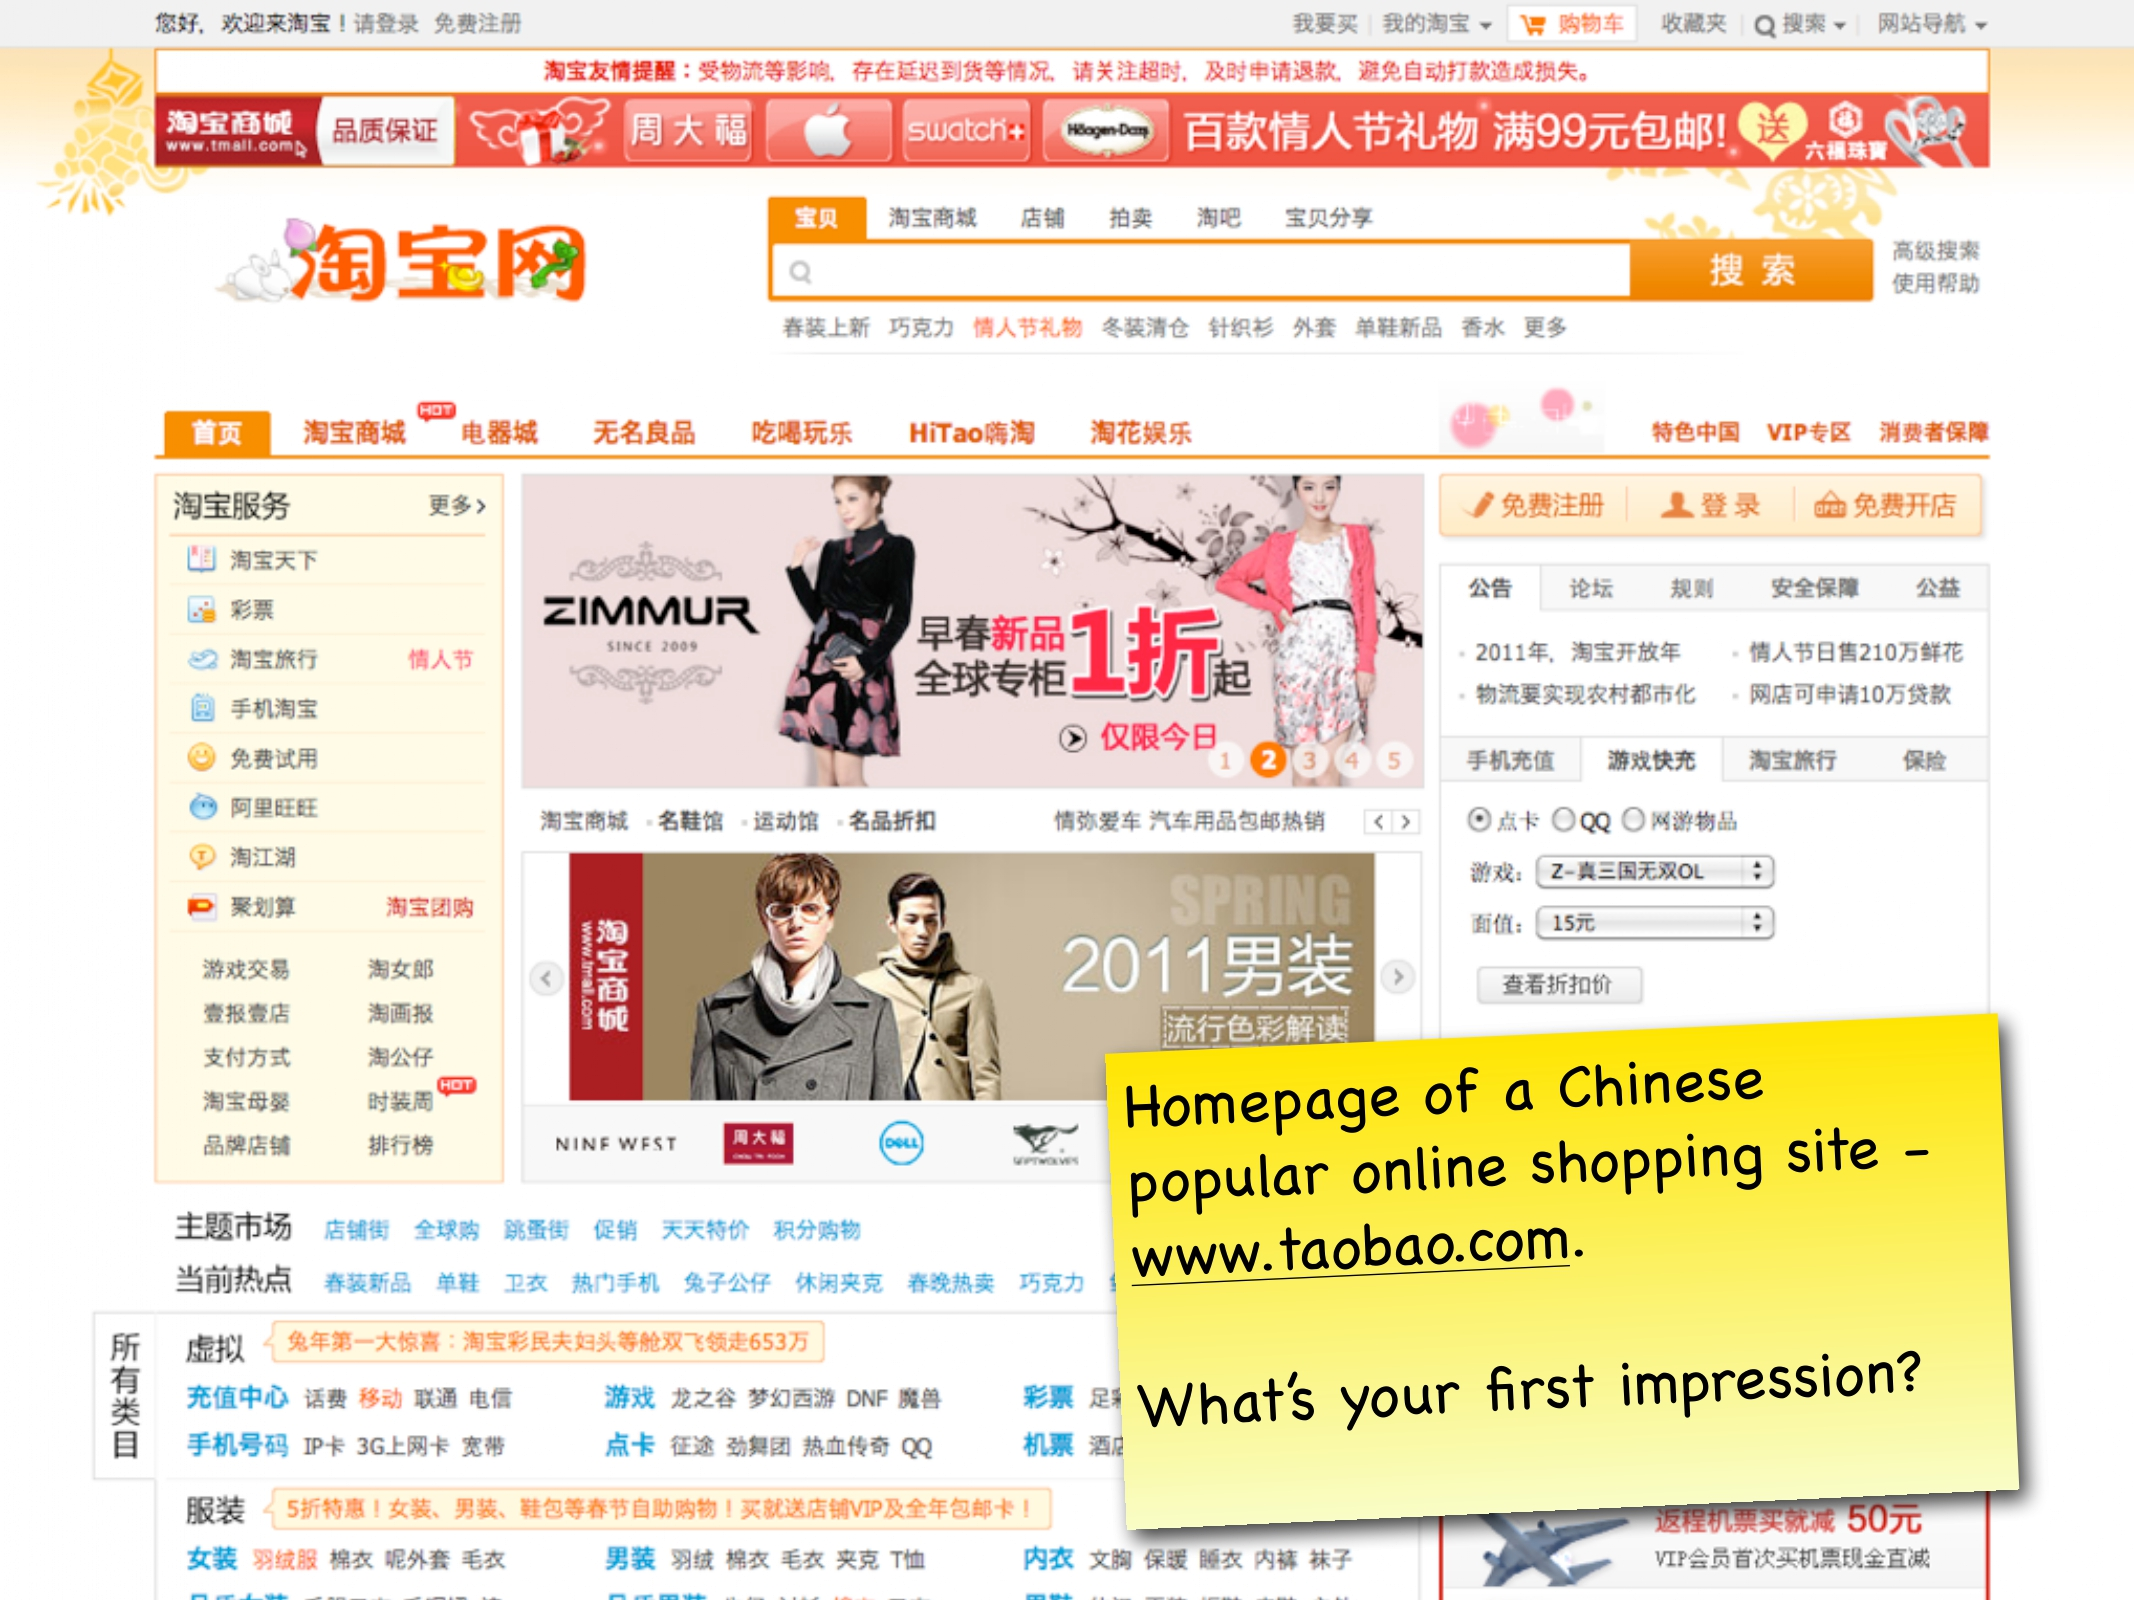 Chinese Web Design Patterns 2011_pages-to-jpg-0003.jpg